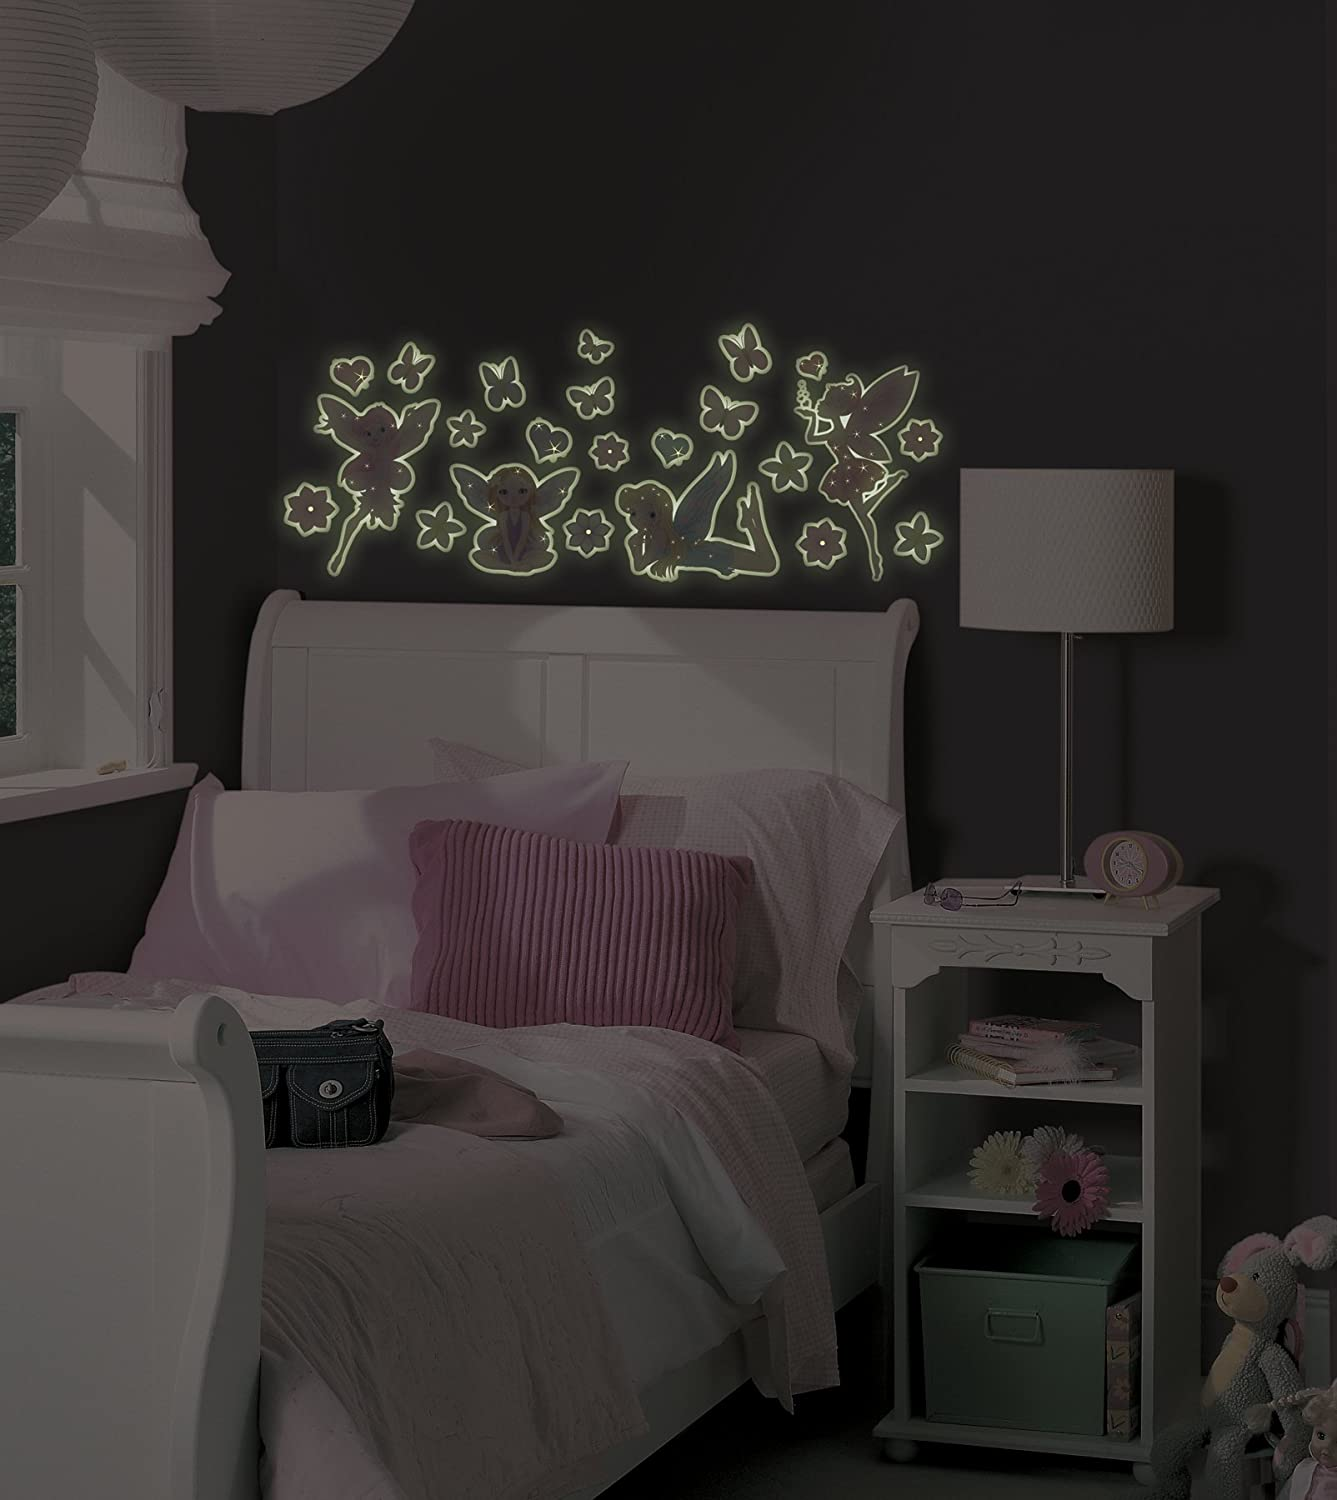 mystyle ms0103 fairies glow in the dark peel and stick wall art mystyle ms0103 fairies glow in the dark peel and stick wall art 23 total pieces decorative wall appliques amazon com